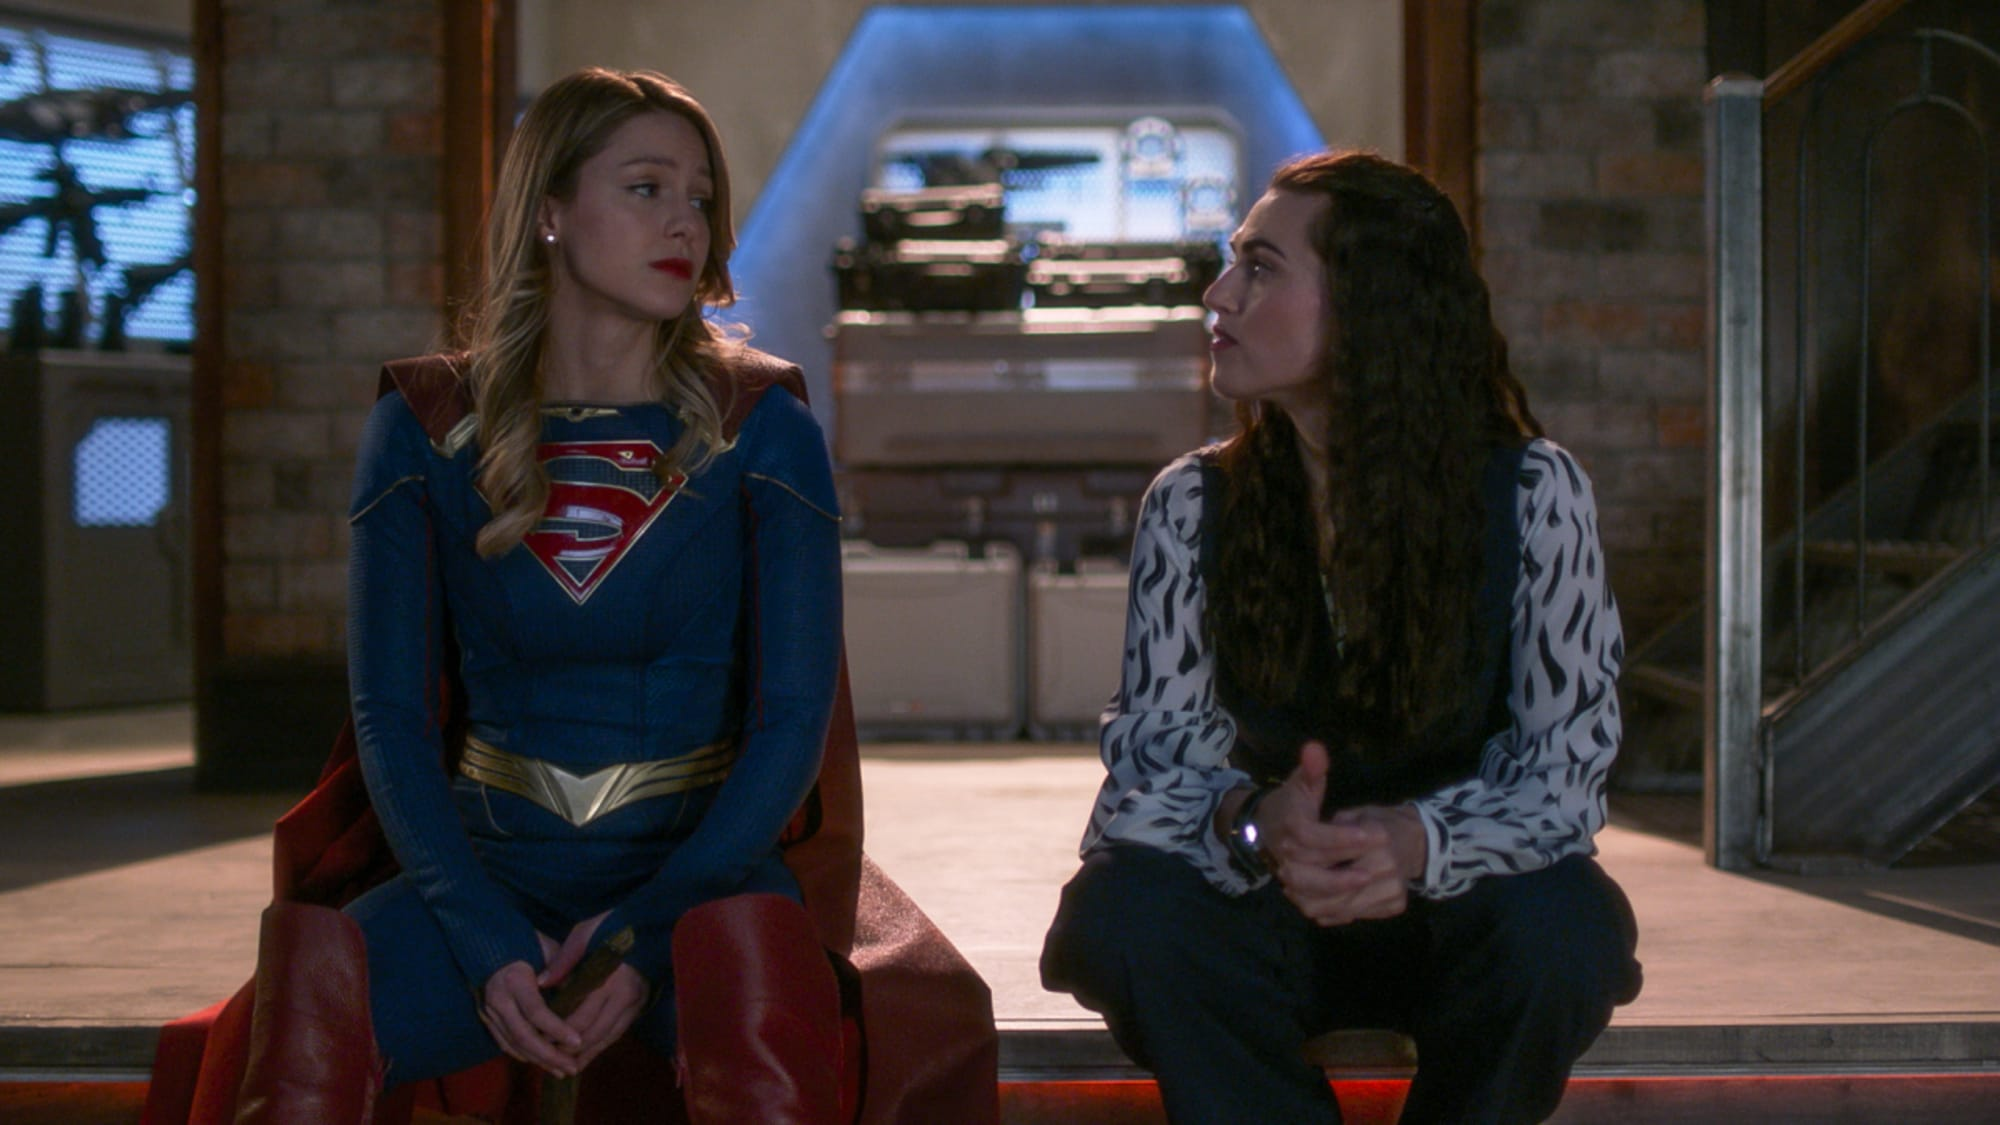 Supergirl season 6 spoilers: Who does Kara end up with?